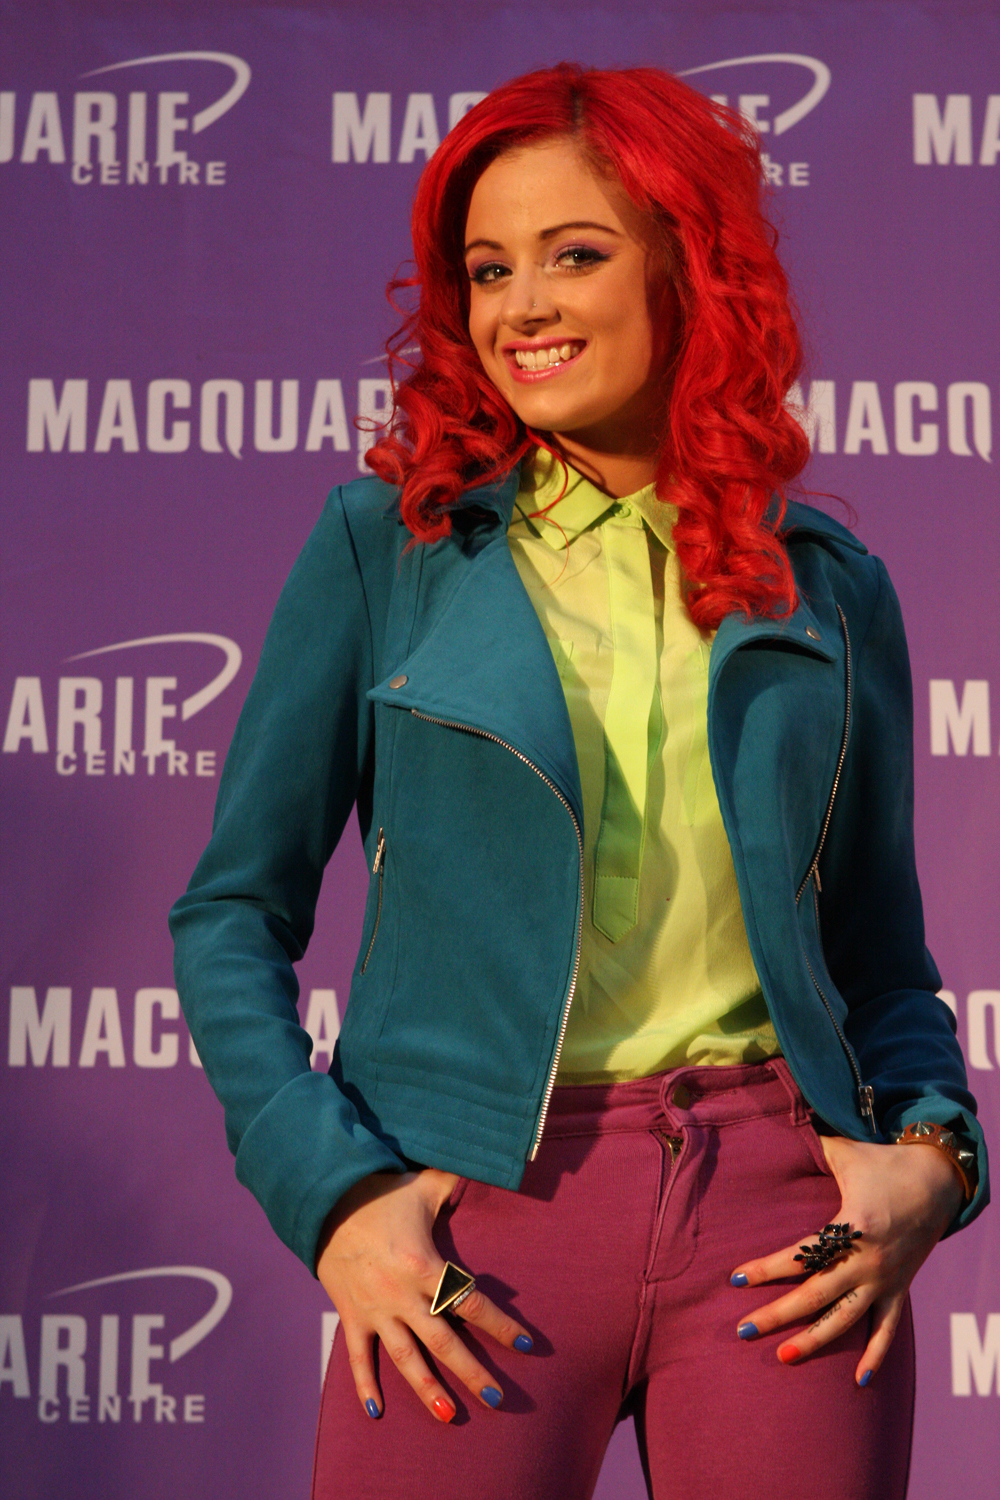 who is sarah de bono dating An even worse impression comes in the form of sarah's dating history – most prevalently that she has been crushing hardcore shane keough: @tamrabarney you.